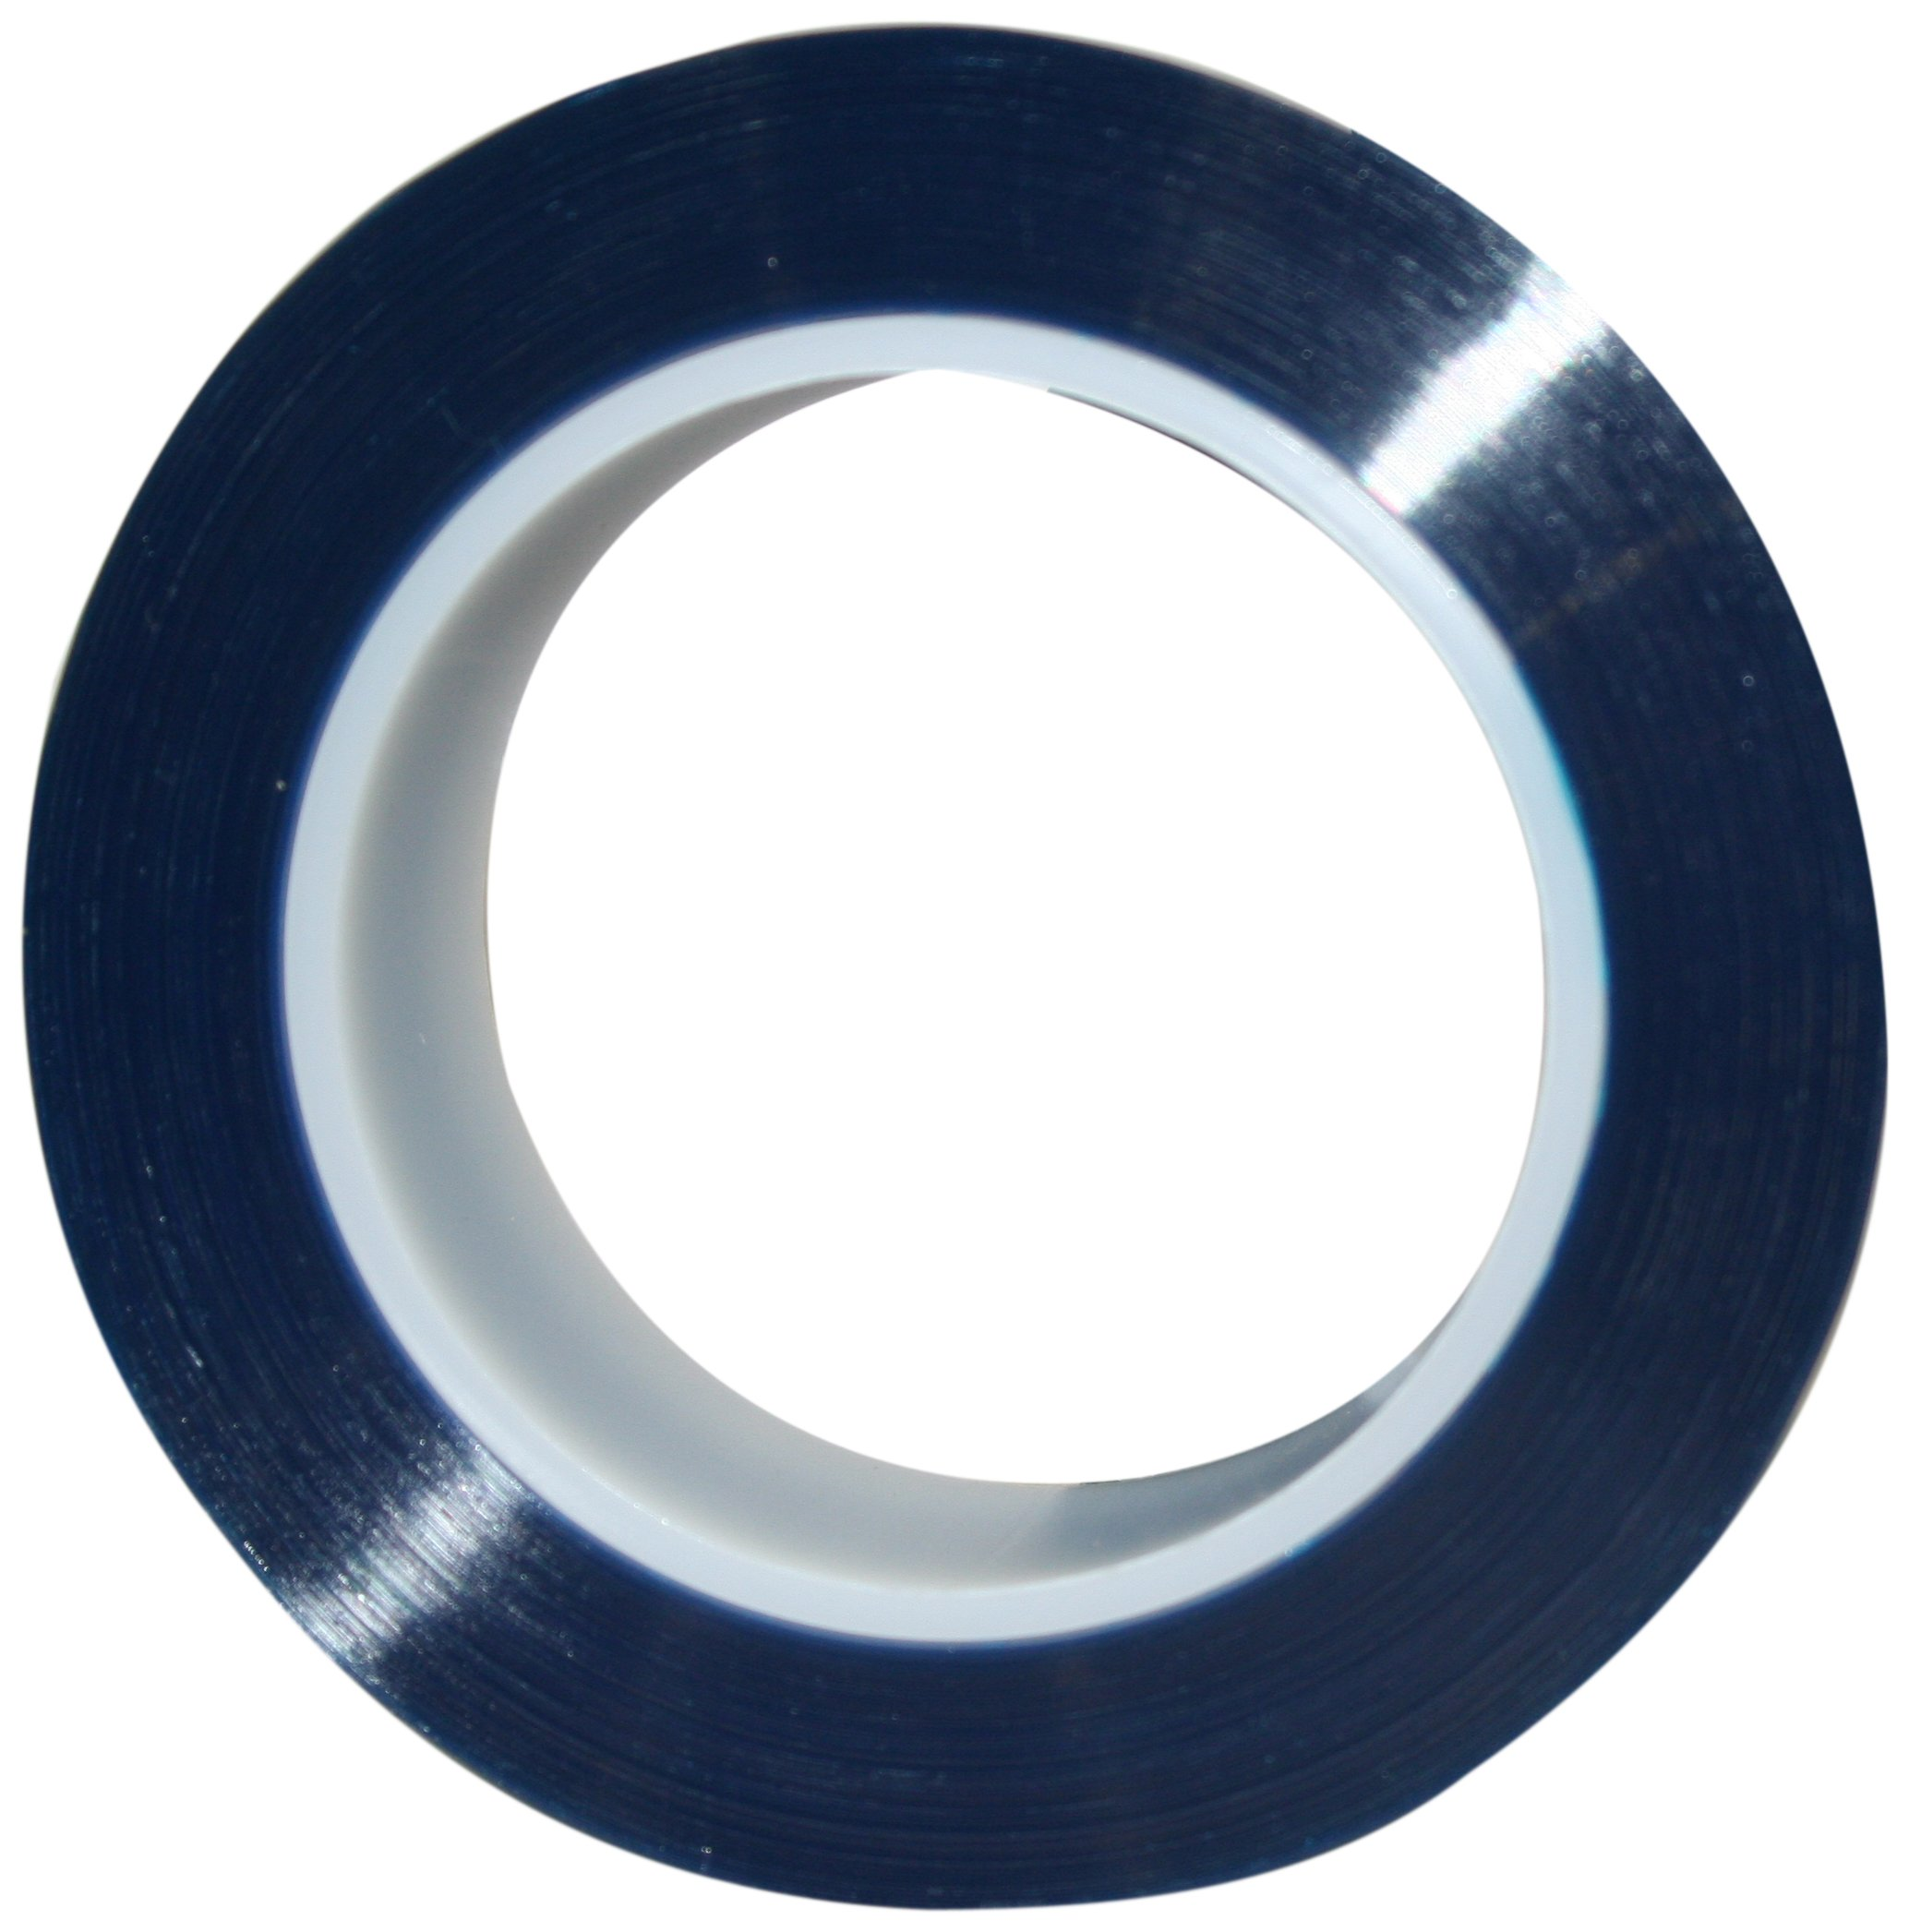 Maxi Flash Break Silicone Film Electrical Tape, 3.3 mil Thick, 72 yds Length, 4'' Width, Blue